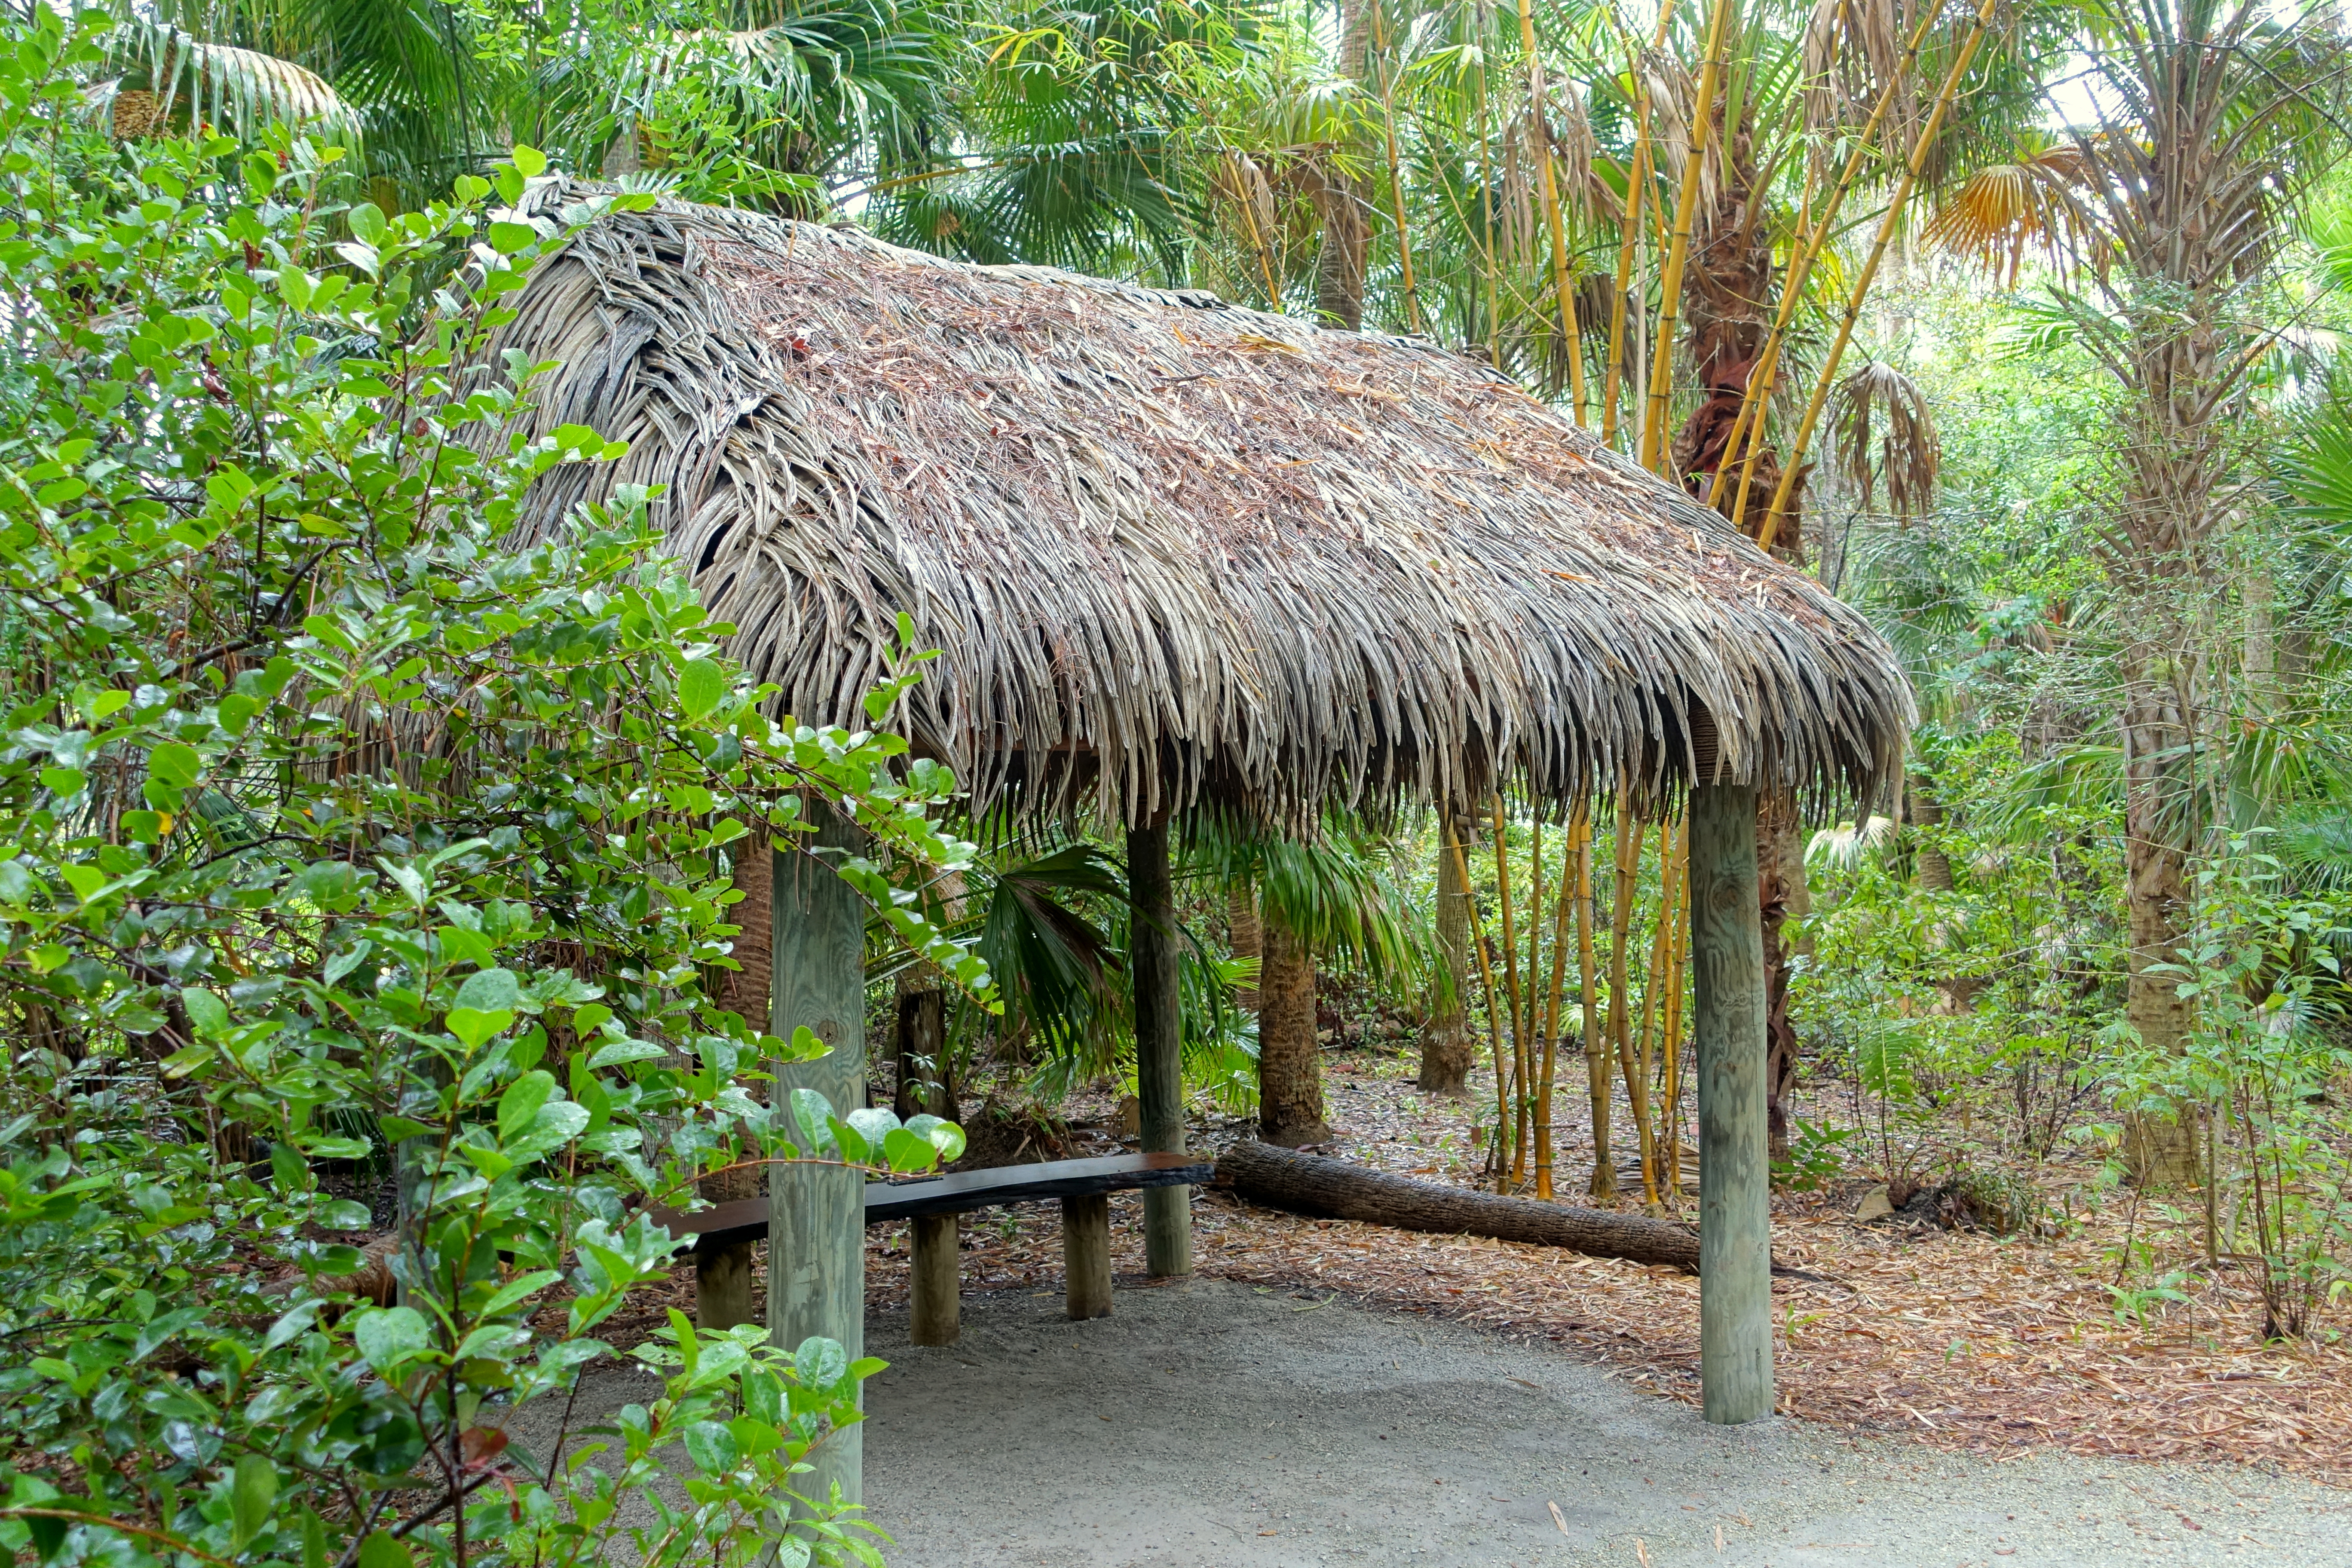 File:Rain shelter - McKee Botanical Garden - Vero Beach, Florida ...